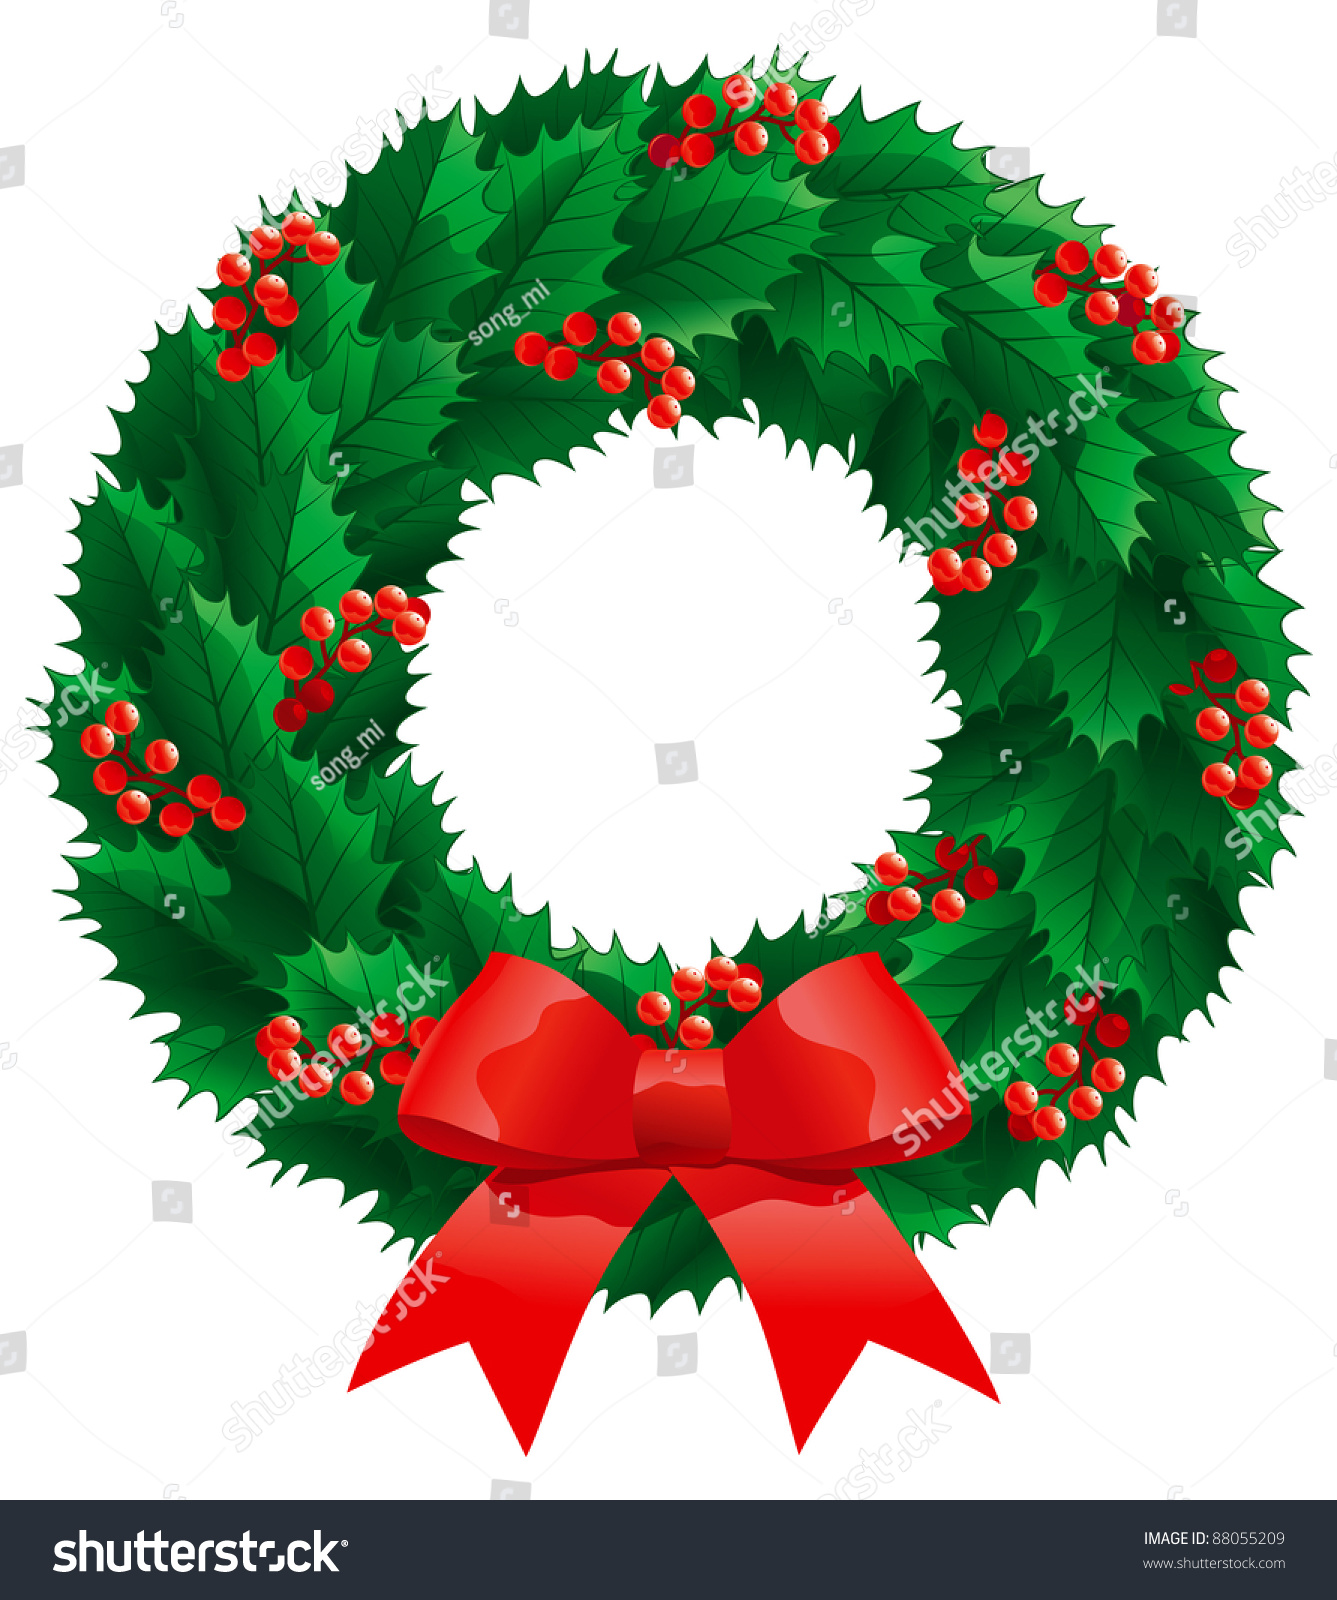 Christmas Holly Wreath Vector Christmas Decoration Stock Vector ...